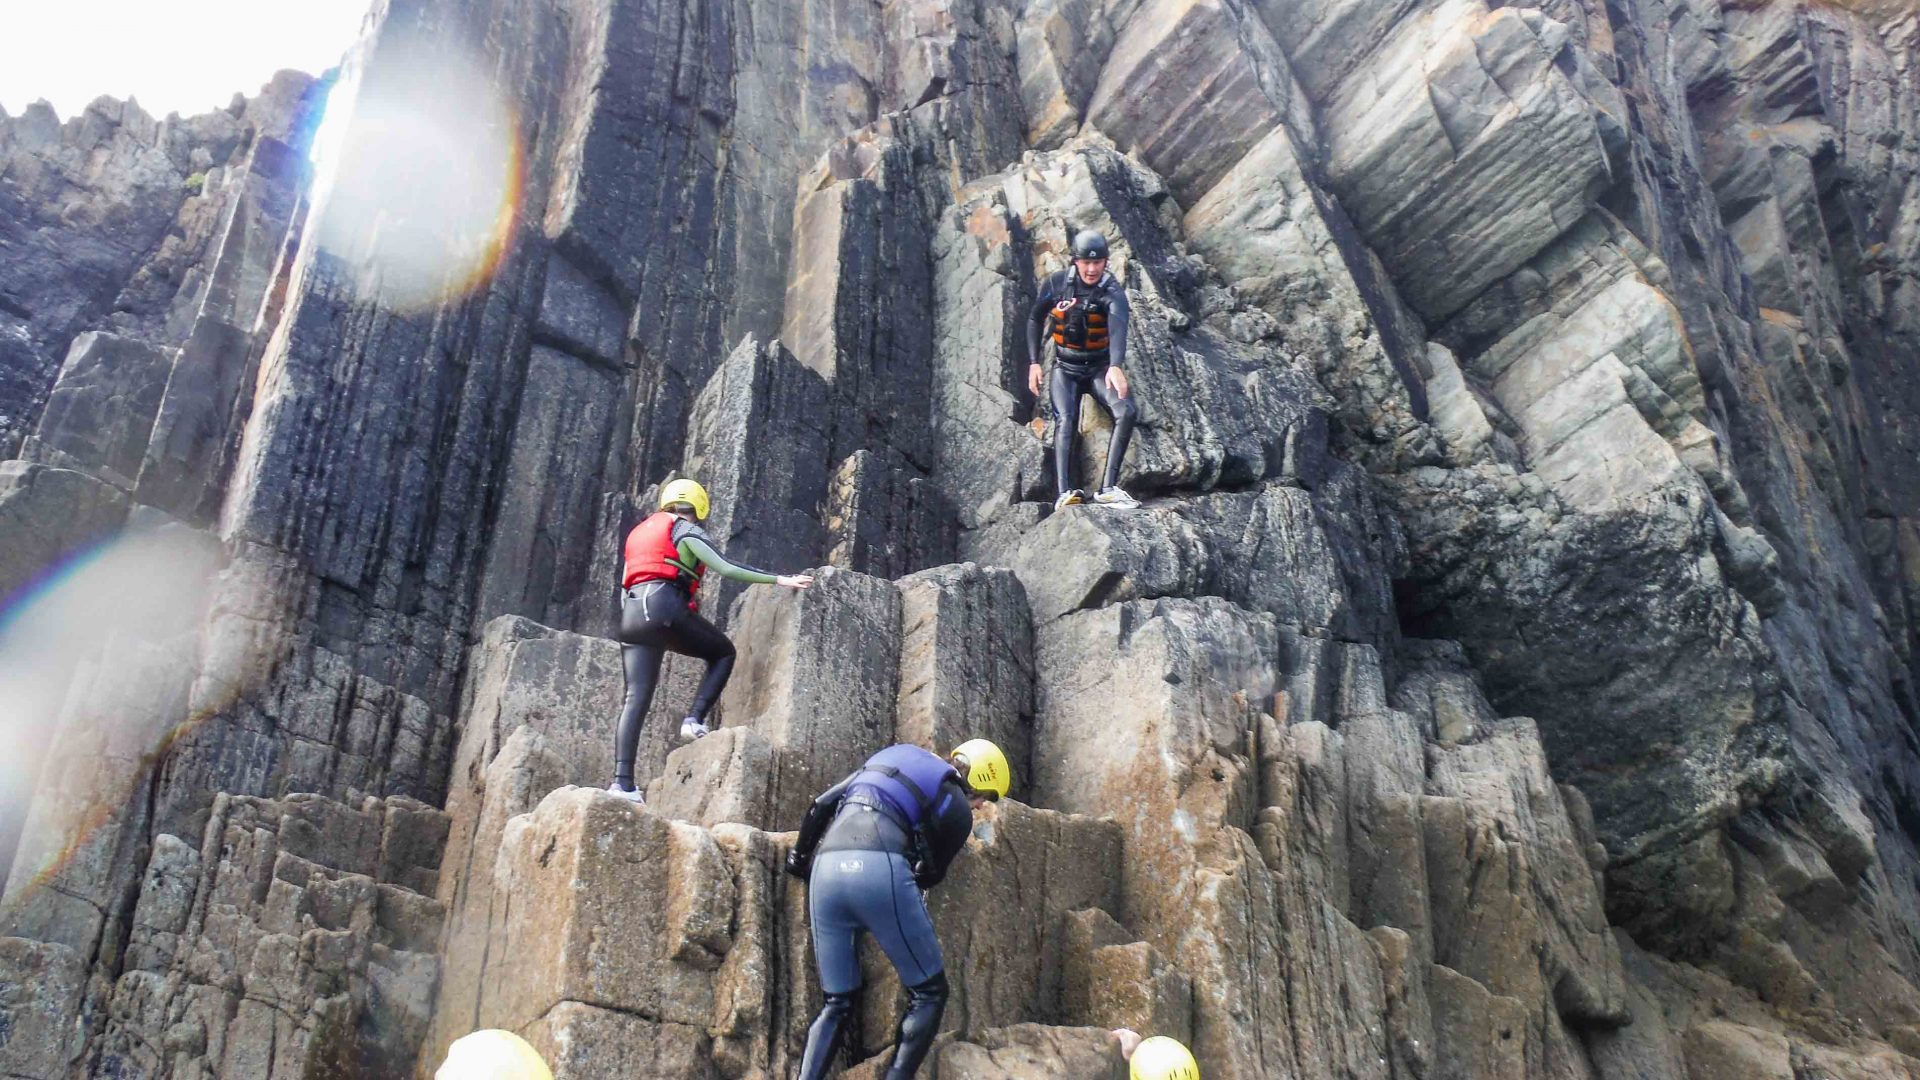 Clients on this coasteering adventure help each other up the tall rocky cliff ahead of them.